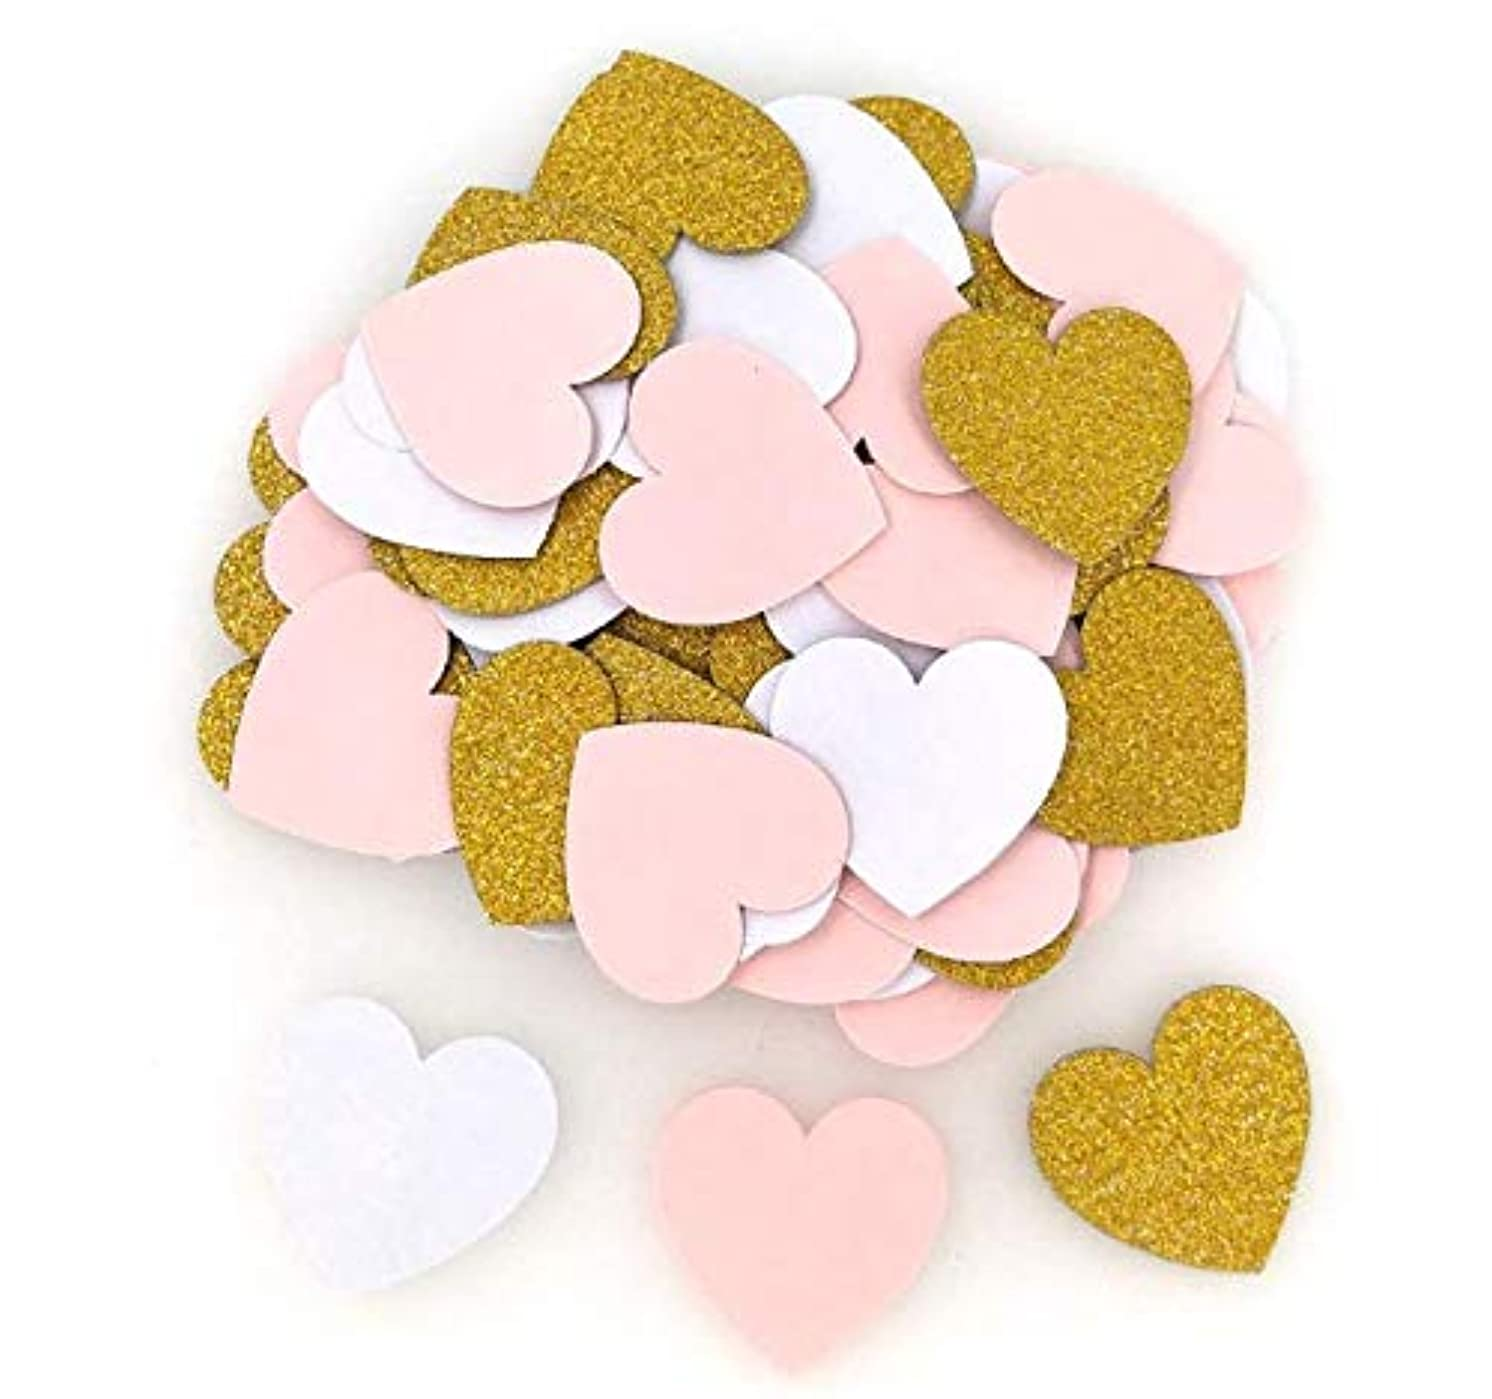 Glitter Lovely Heart Paper Confetti, Wedding Party Decor and Table Decor, 1.2'' in Diameter (Pink White Gold,400pc)